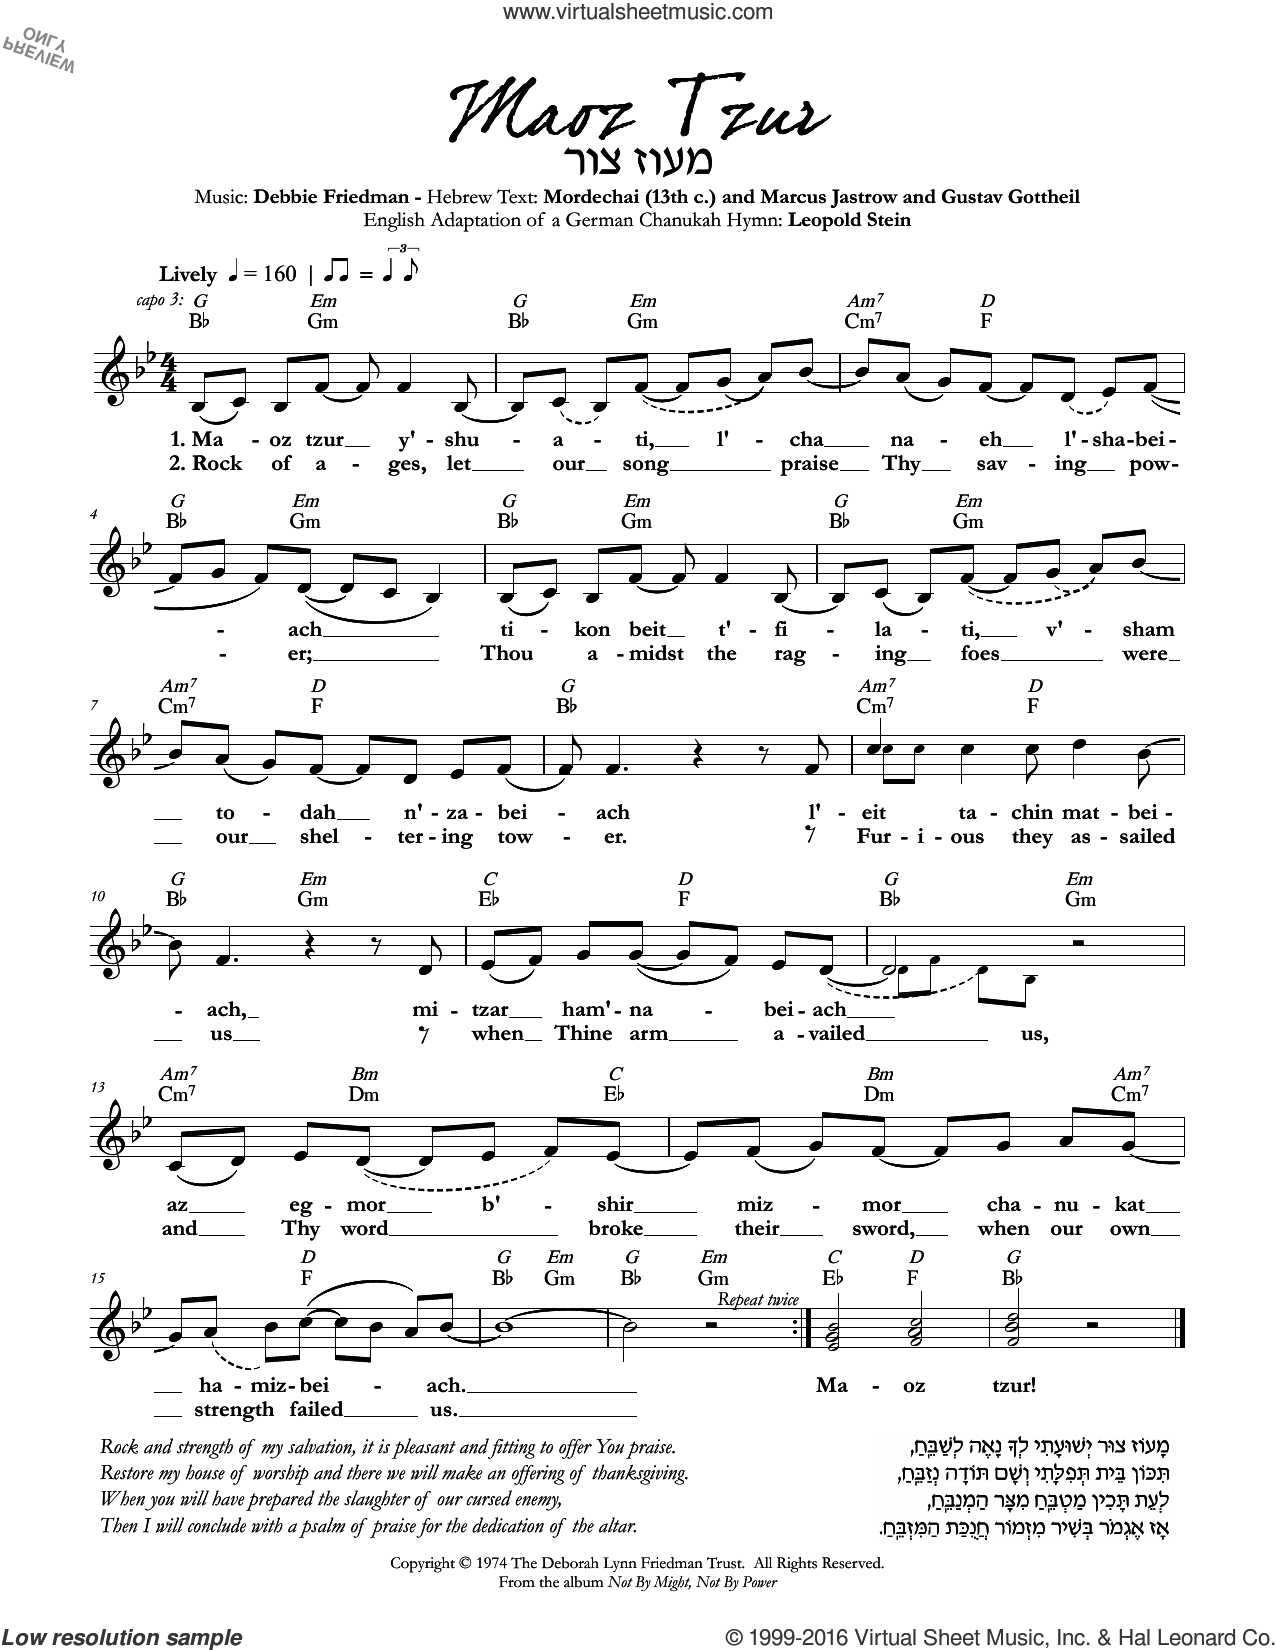 Maoz Tzur sheet music for voice and other instruments (fake book) by Debbie Friedman, Gustav Gottheil & Marcus Jastrow and Debbie Friedman. Score Image Preview.